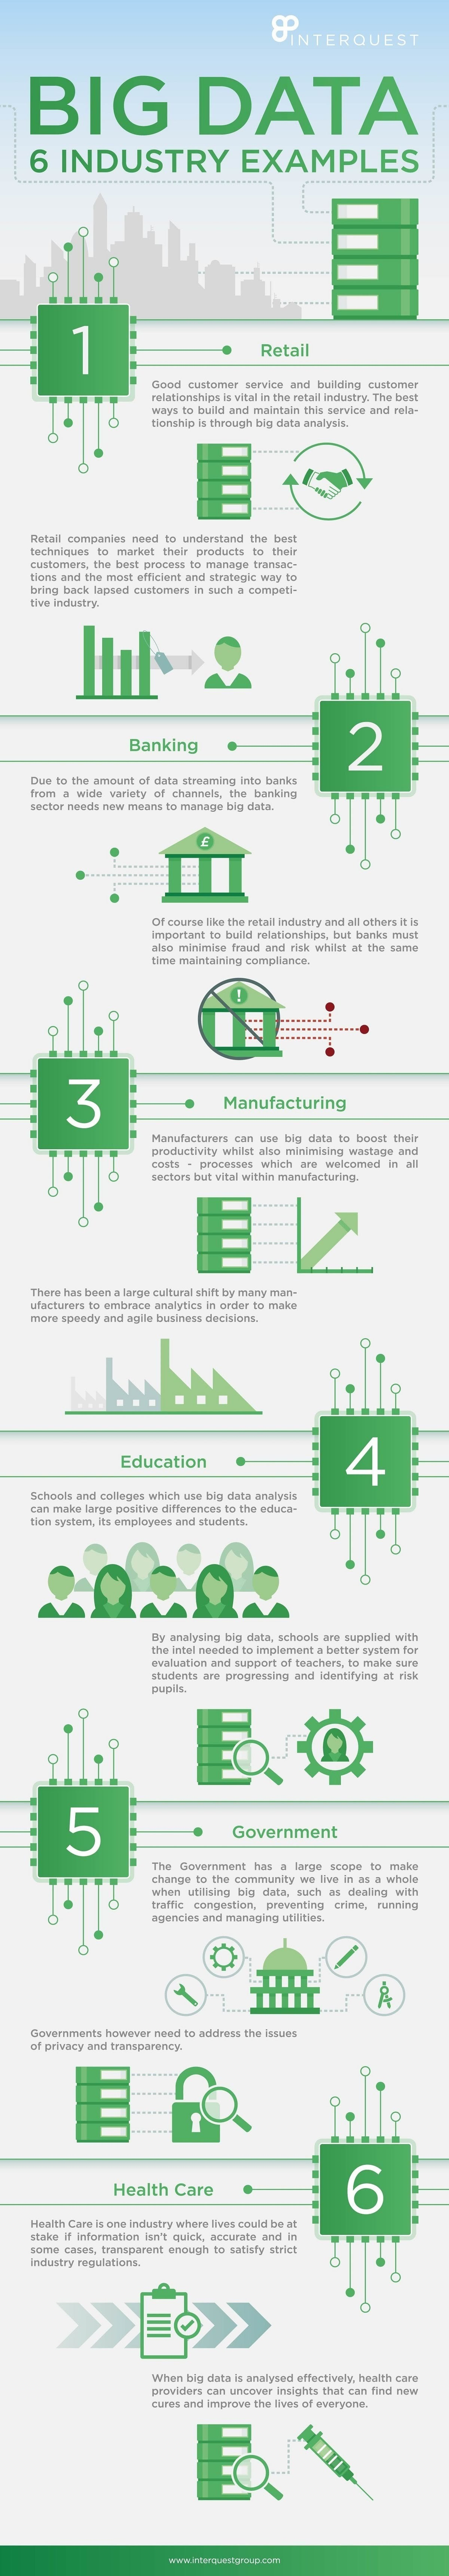 Big Data: 6 Industry Examples #Infographic